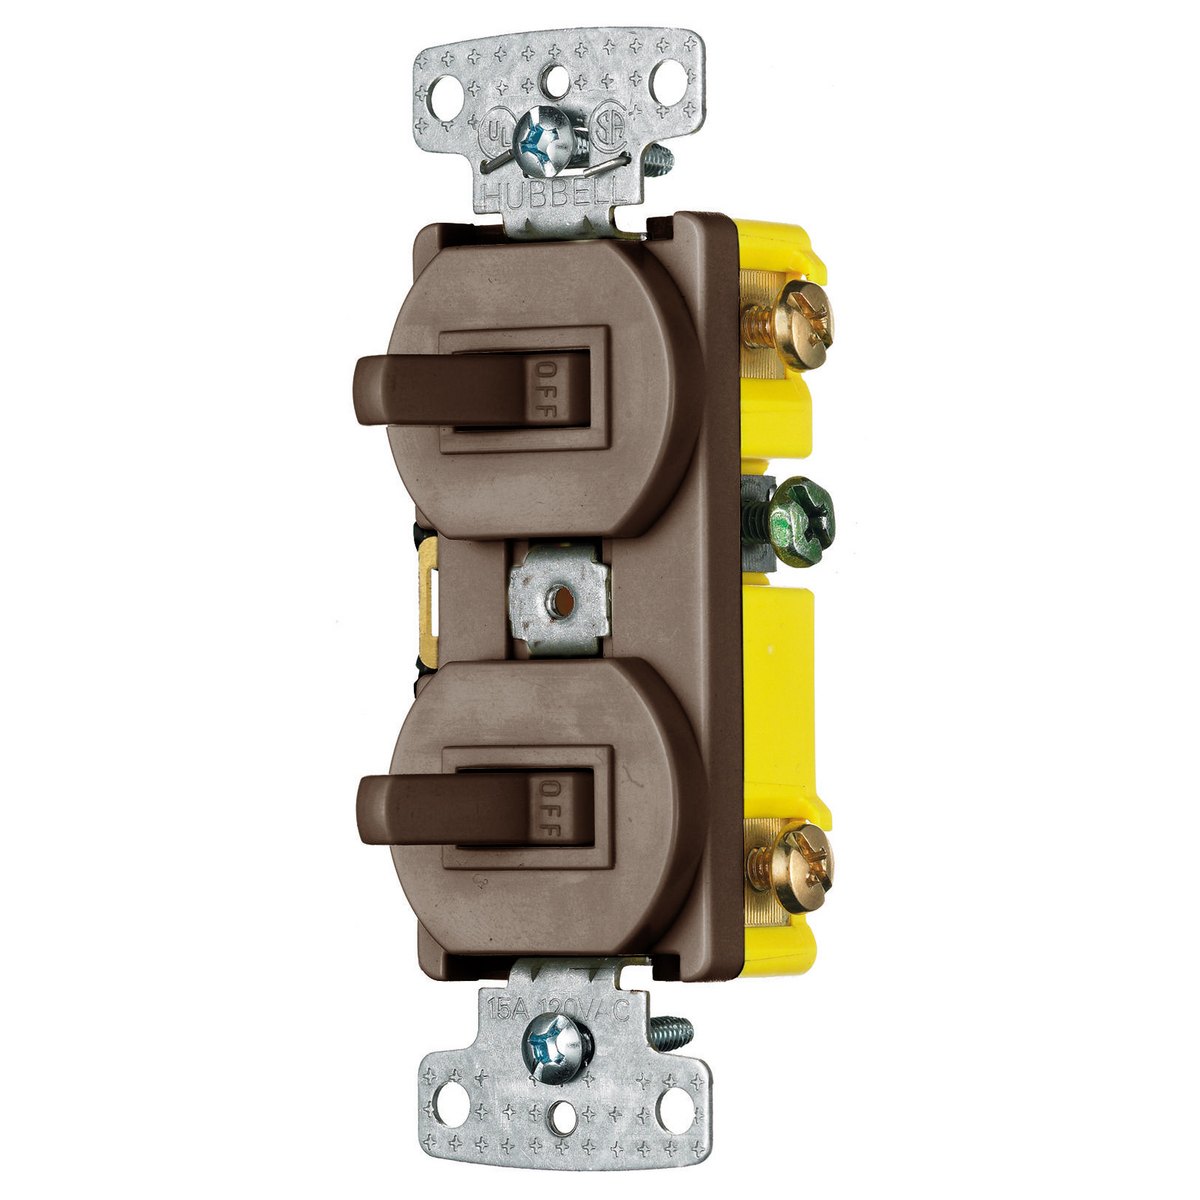 Hubbell RC103 15 Amp 120 VAC 1-Pole 3-Way Brown Combination Switch